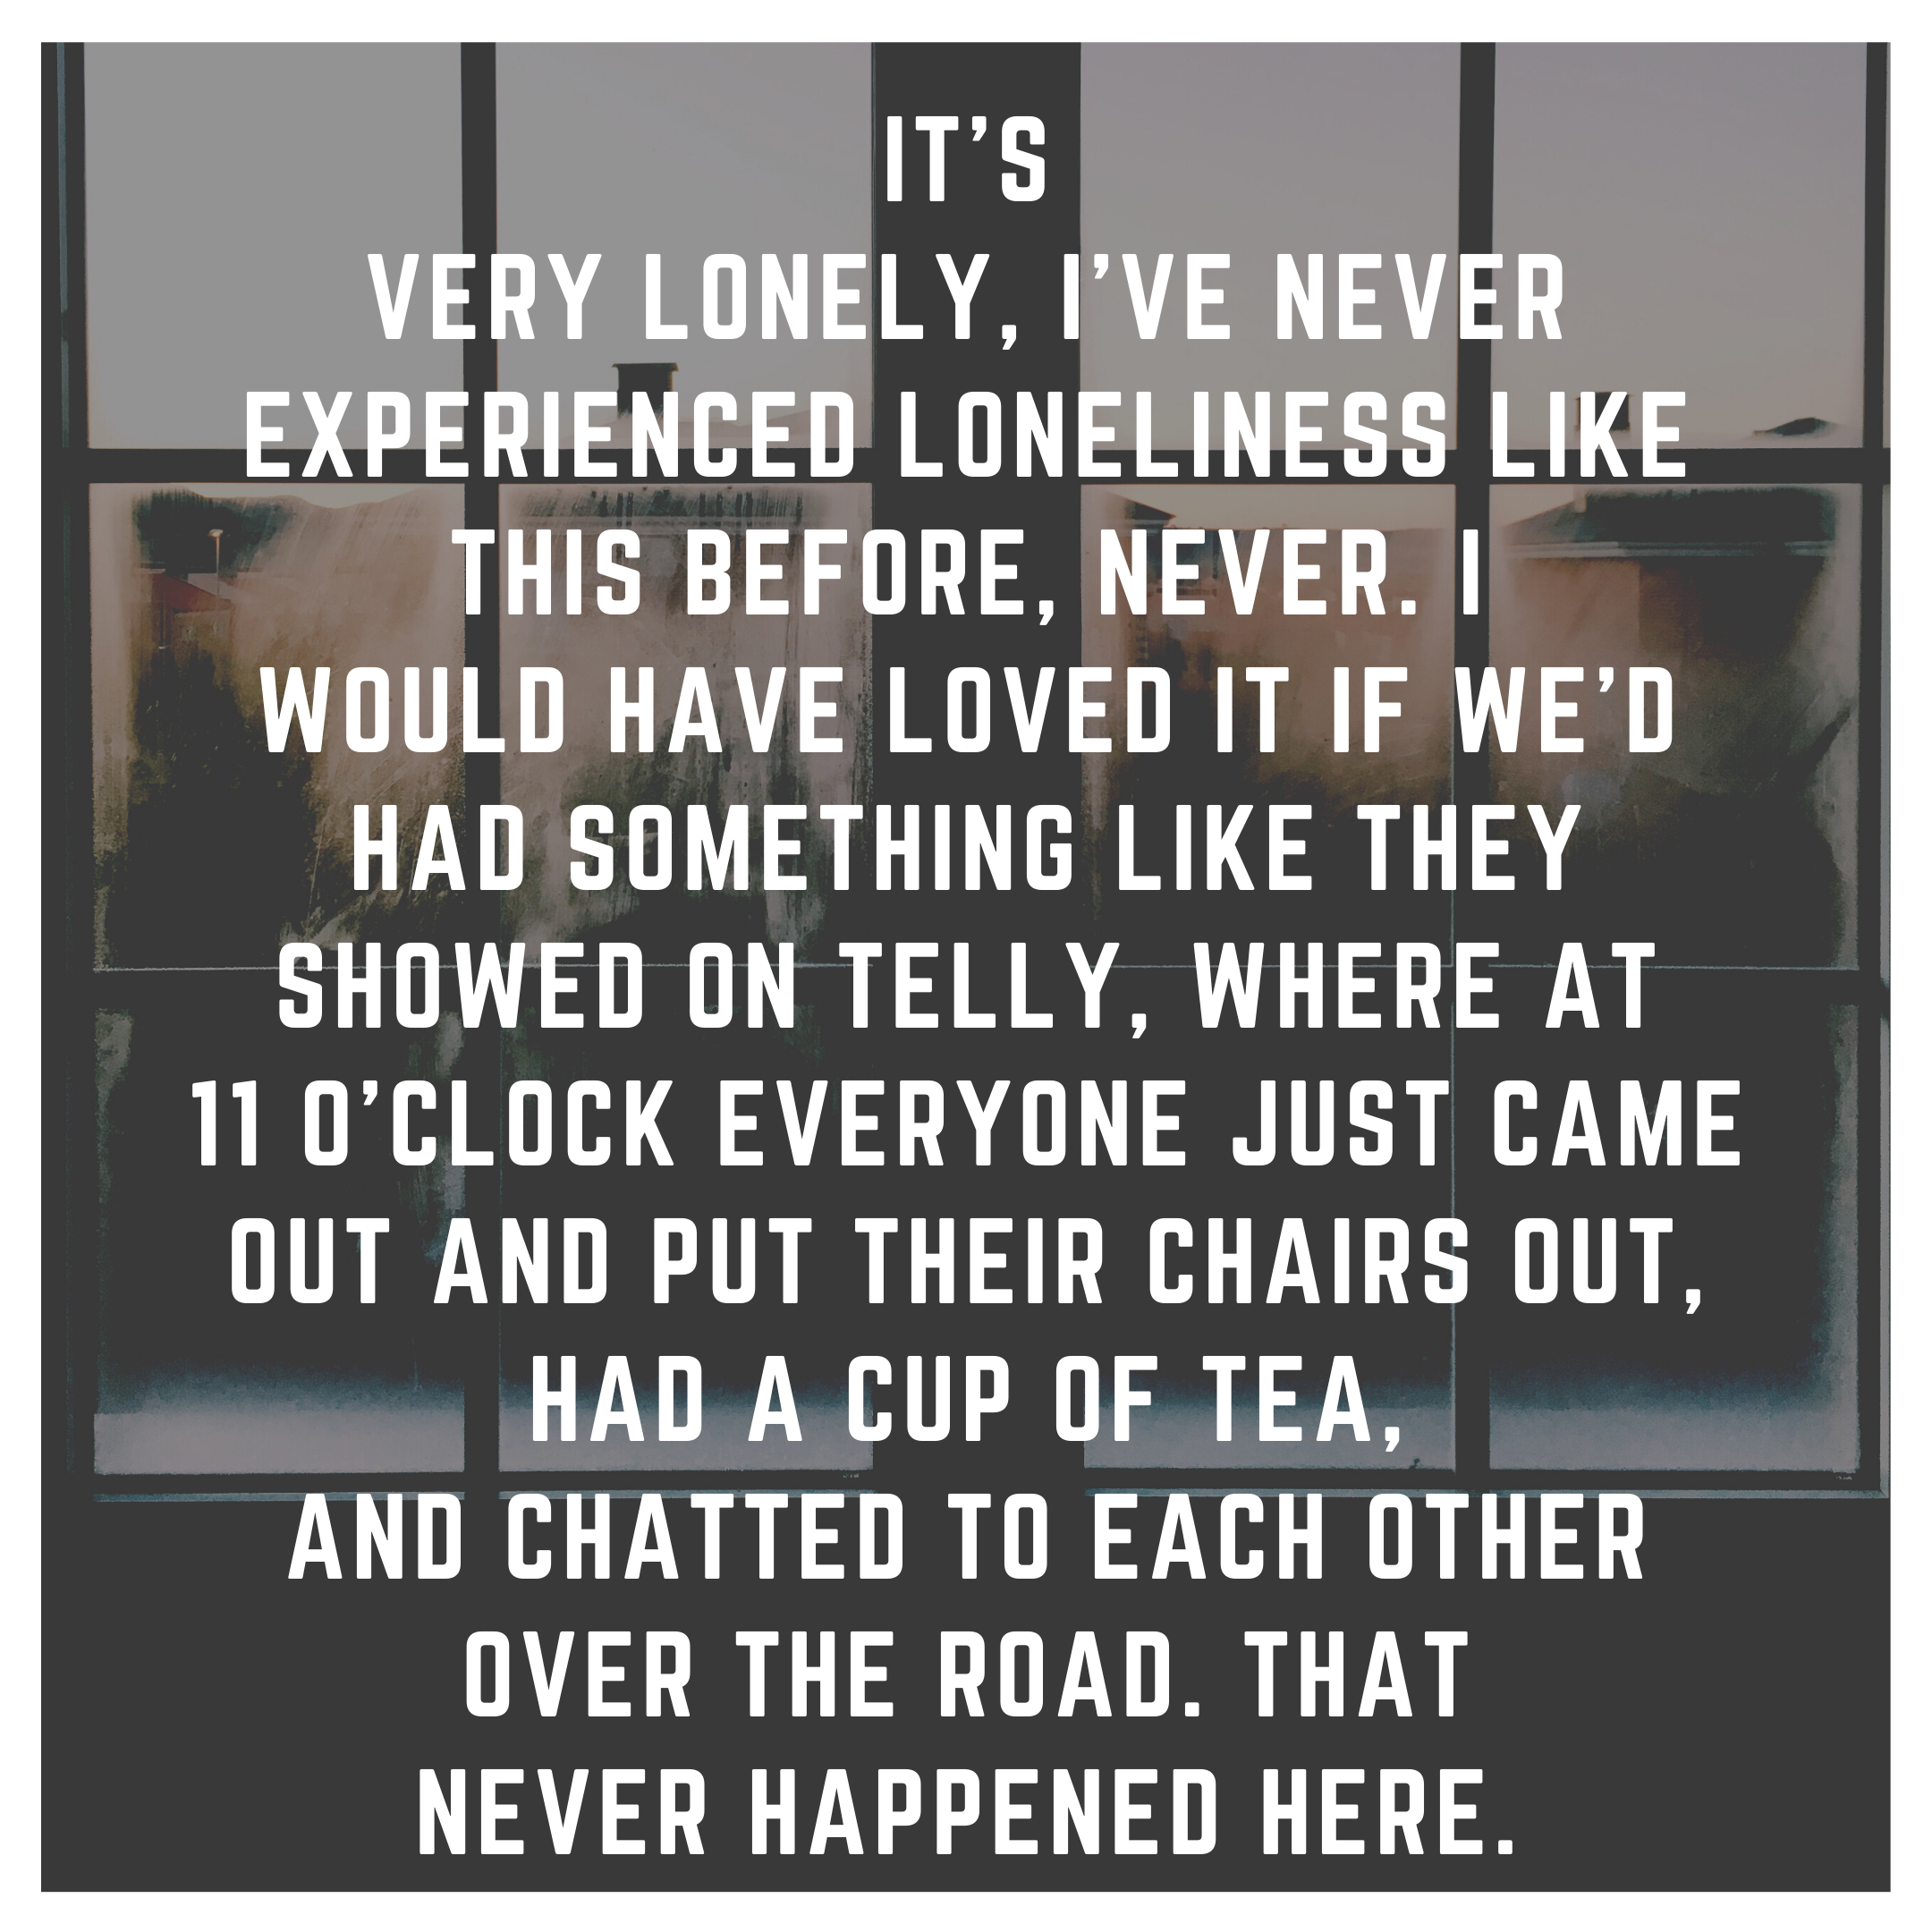 Quote from text: It's very lonely, I've never experienced loneliness like this before, never. I would have loved it if we'd had something like they showed on telly, where at 11 o'clock everyone just came out and put their chairs out, had a cup of tea, and chatted to each other over the road. That never happened here.